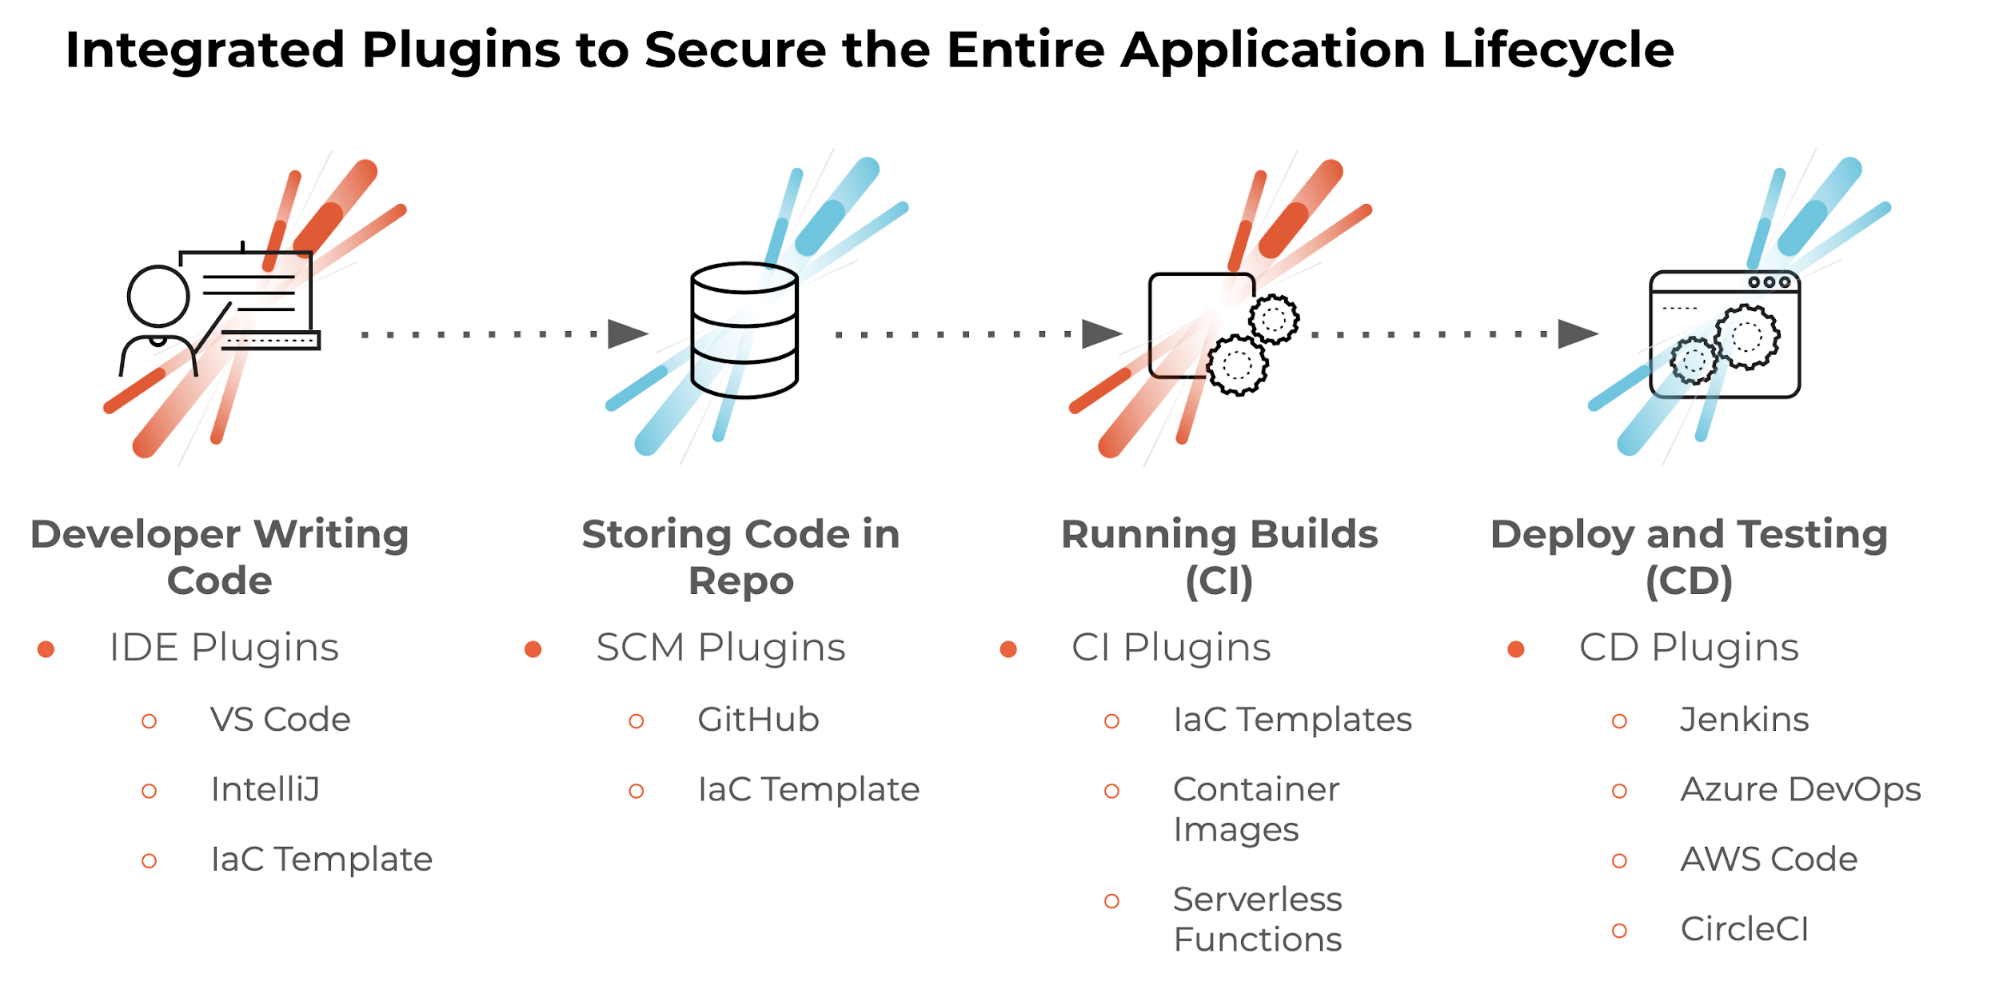 Integrated Plugins to Secure the Entire Application Lifecycle. This graphic shows the flow from a developer writing code to storing code in repo to running builds to deploy and testing.